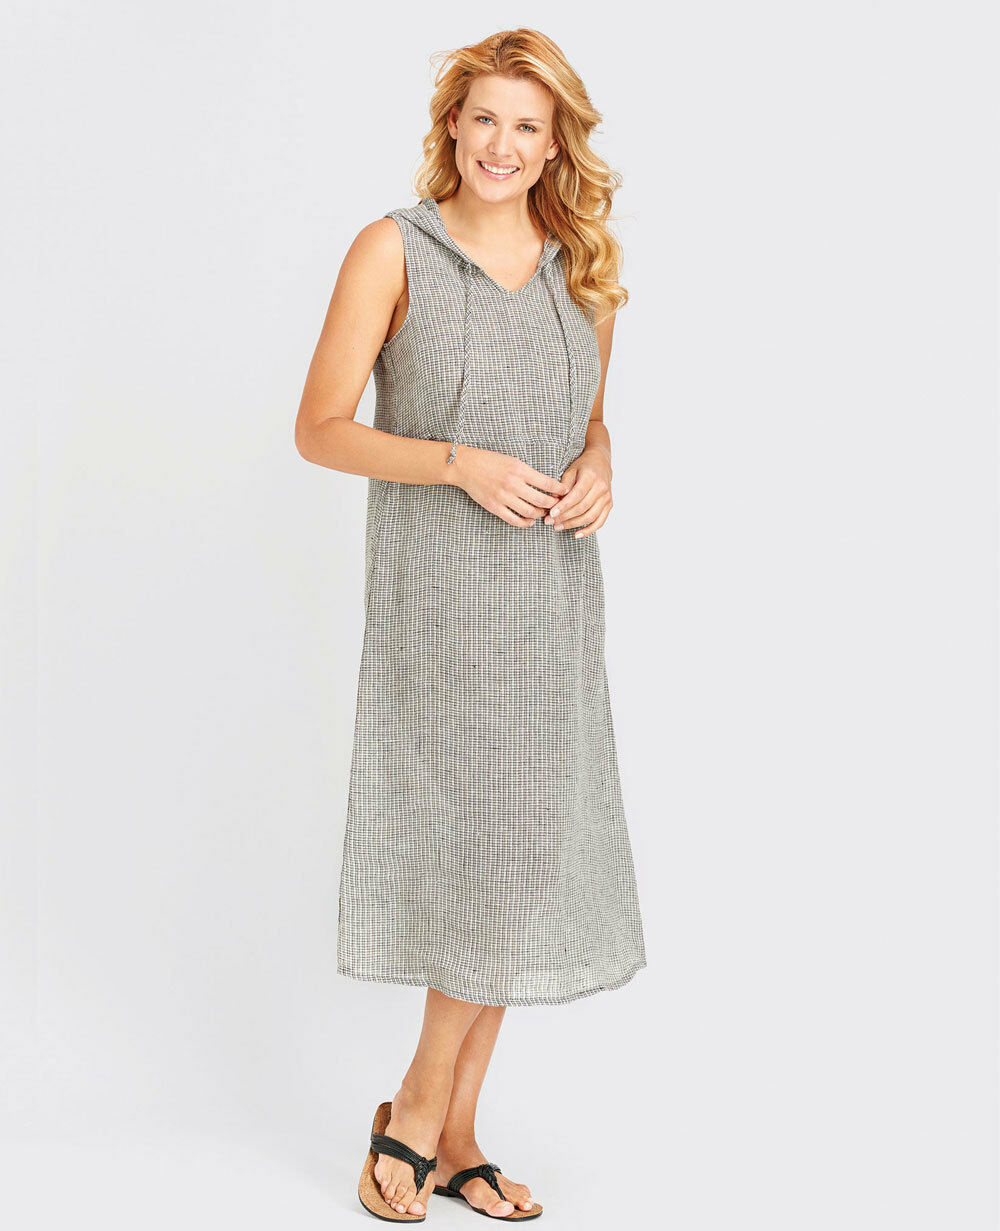 flax-brand-clothing-for-petite-women